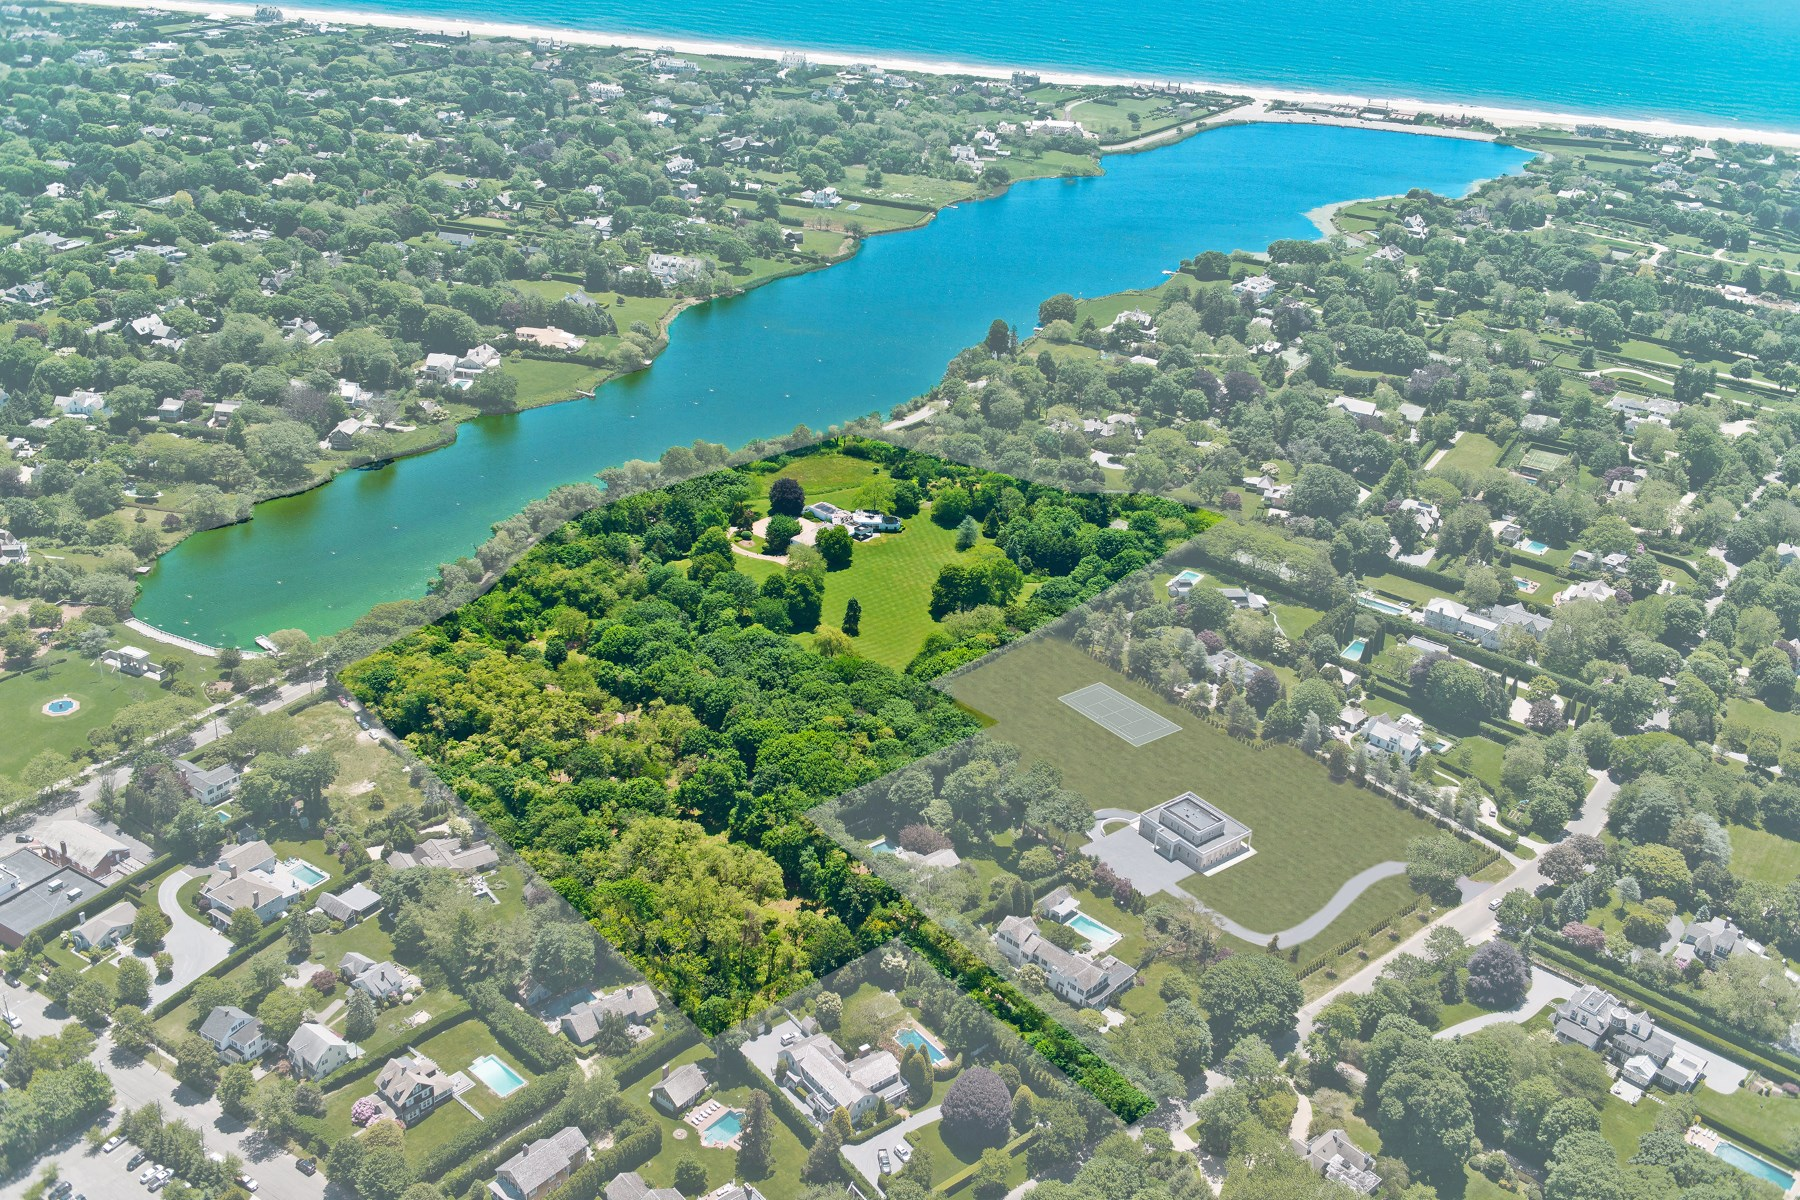 Maison unifamiliale pour l Vente à Spectacular Waterviews on Lake Agawam 137,153 Pond Lane, Lot 4 & 5 Southampton Estate Section, Southampton, New York, 11968 États-Unis